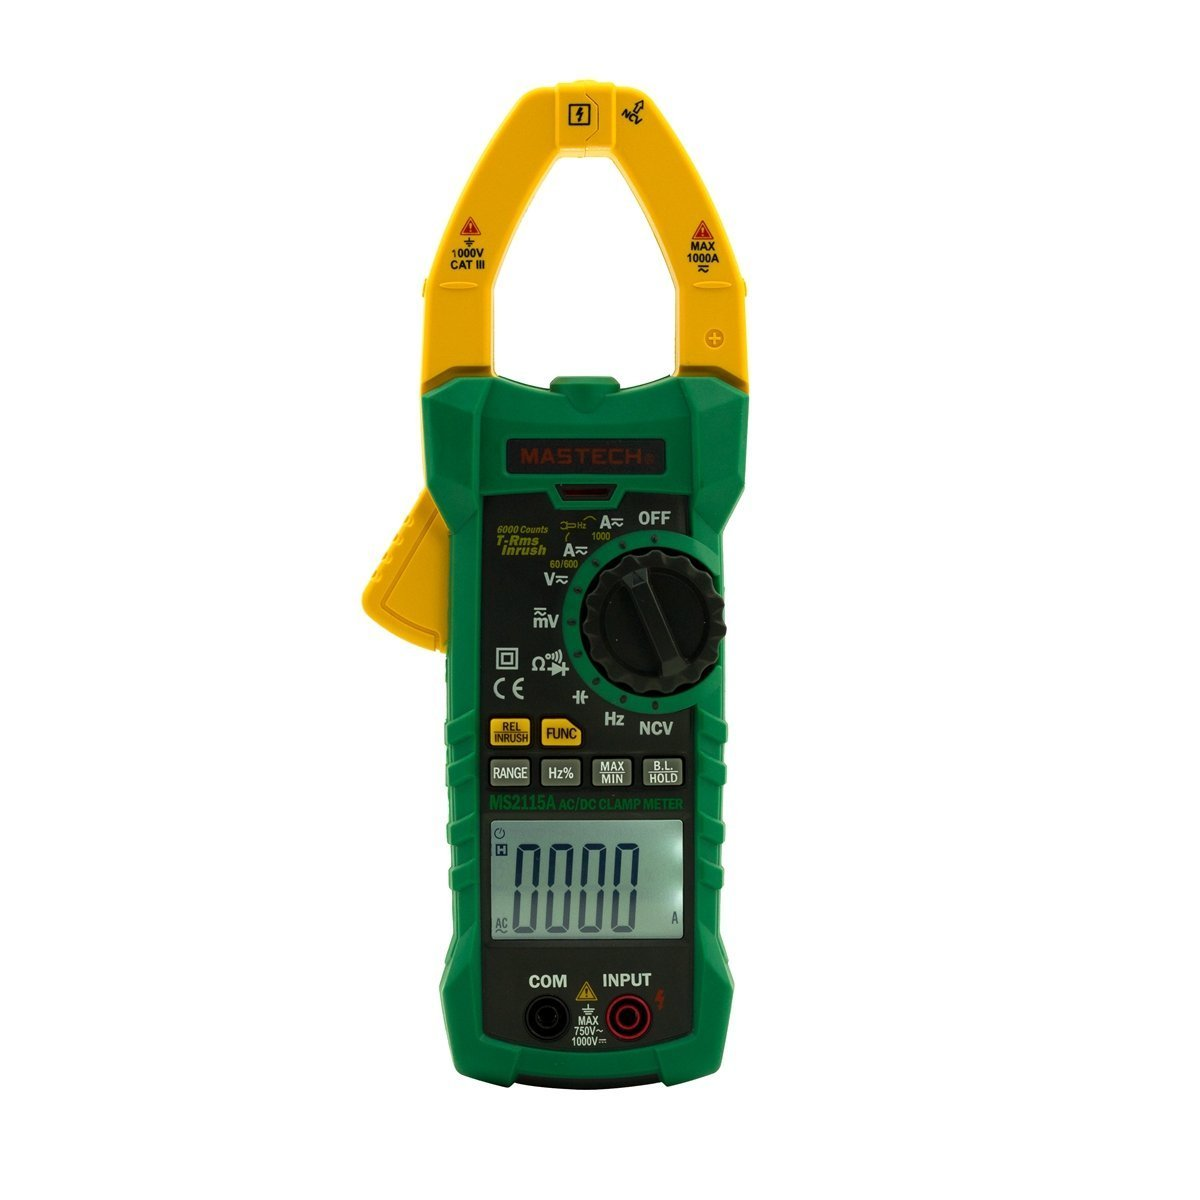 Mastech MS2115A True RMS DIGITAL DC/AC CLAMP METERS Multimeter Amp Voltage R HZ by Mastech